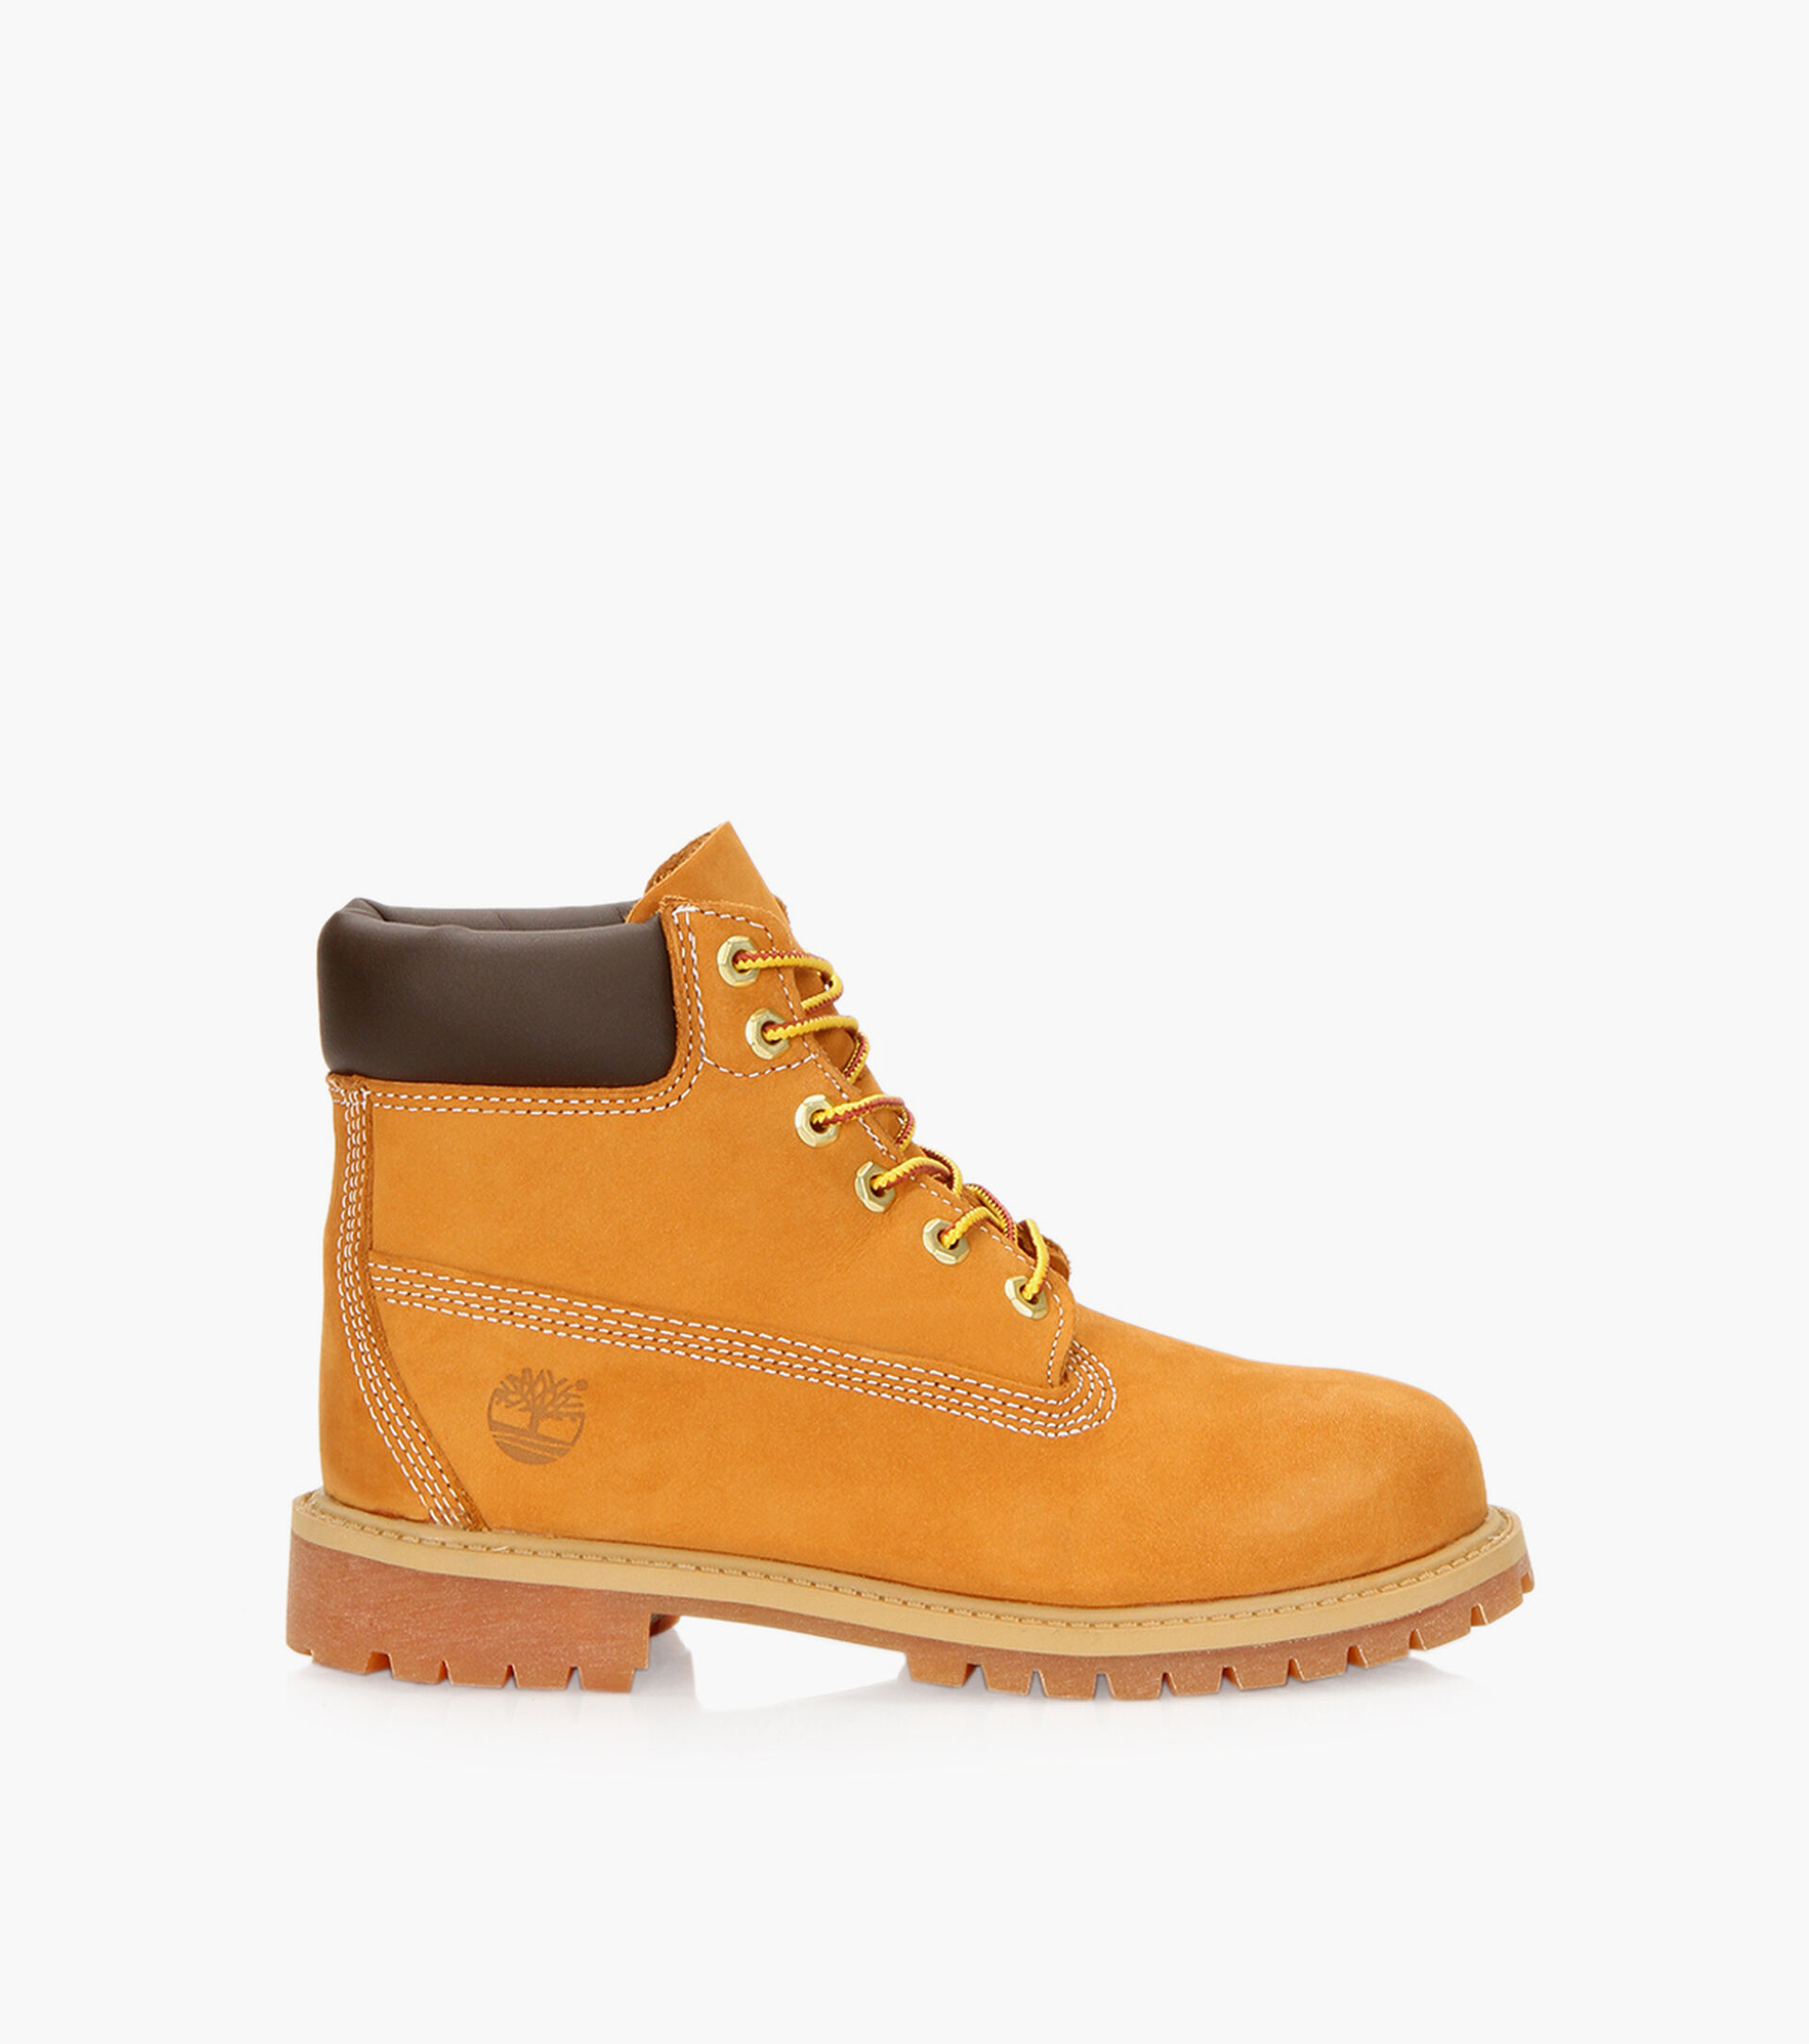 Parpadeo Sollozos Frente a ti  TIMBERLAND 6-INCH PREMIUM WATERPROOF BOOT | Browns Shoes